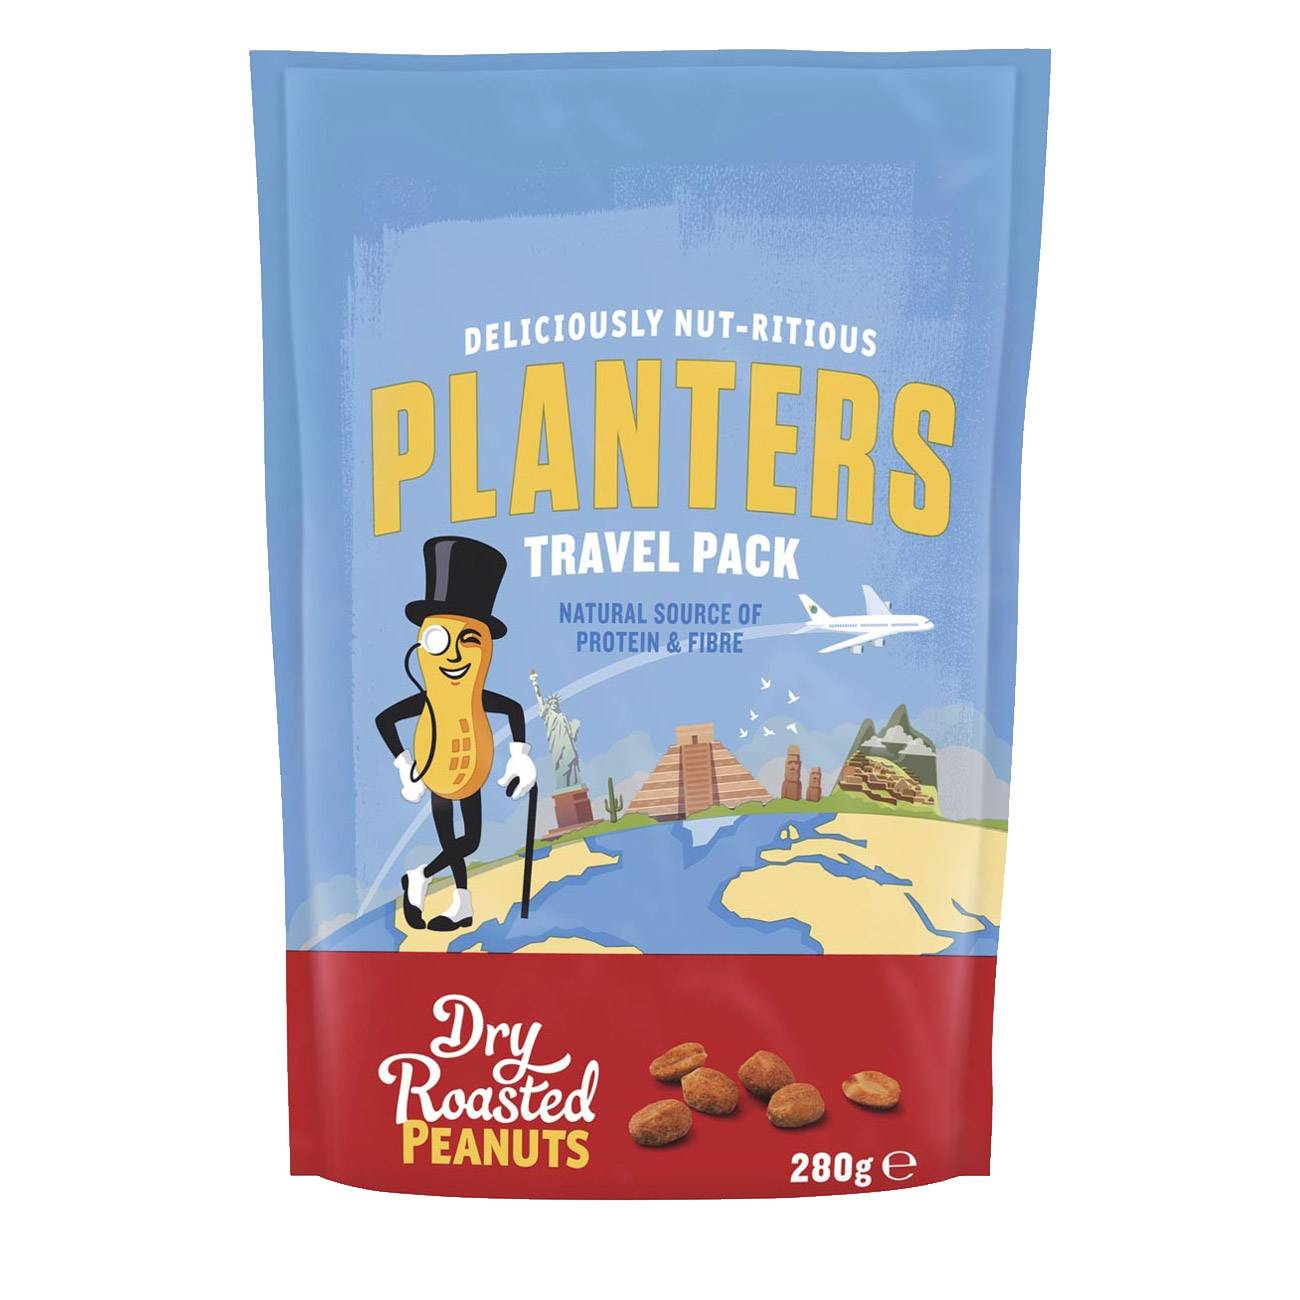 DRY ROASTED PEANUTS TRAVEL PACK 280 Grame